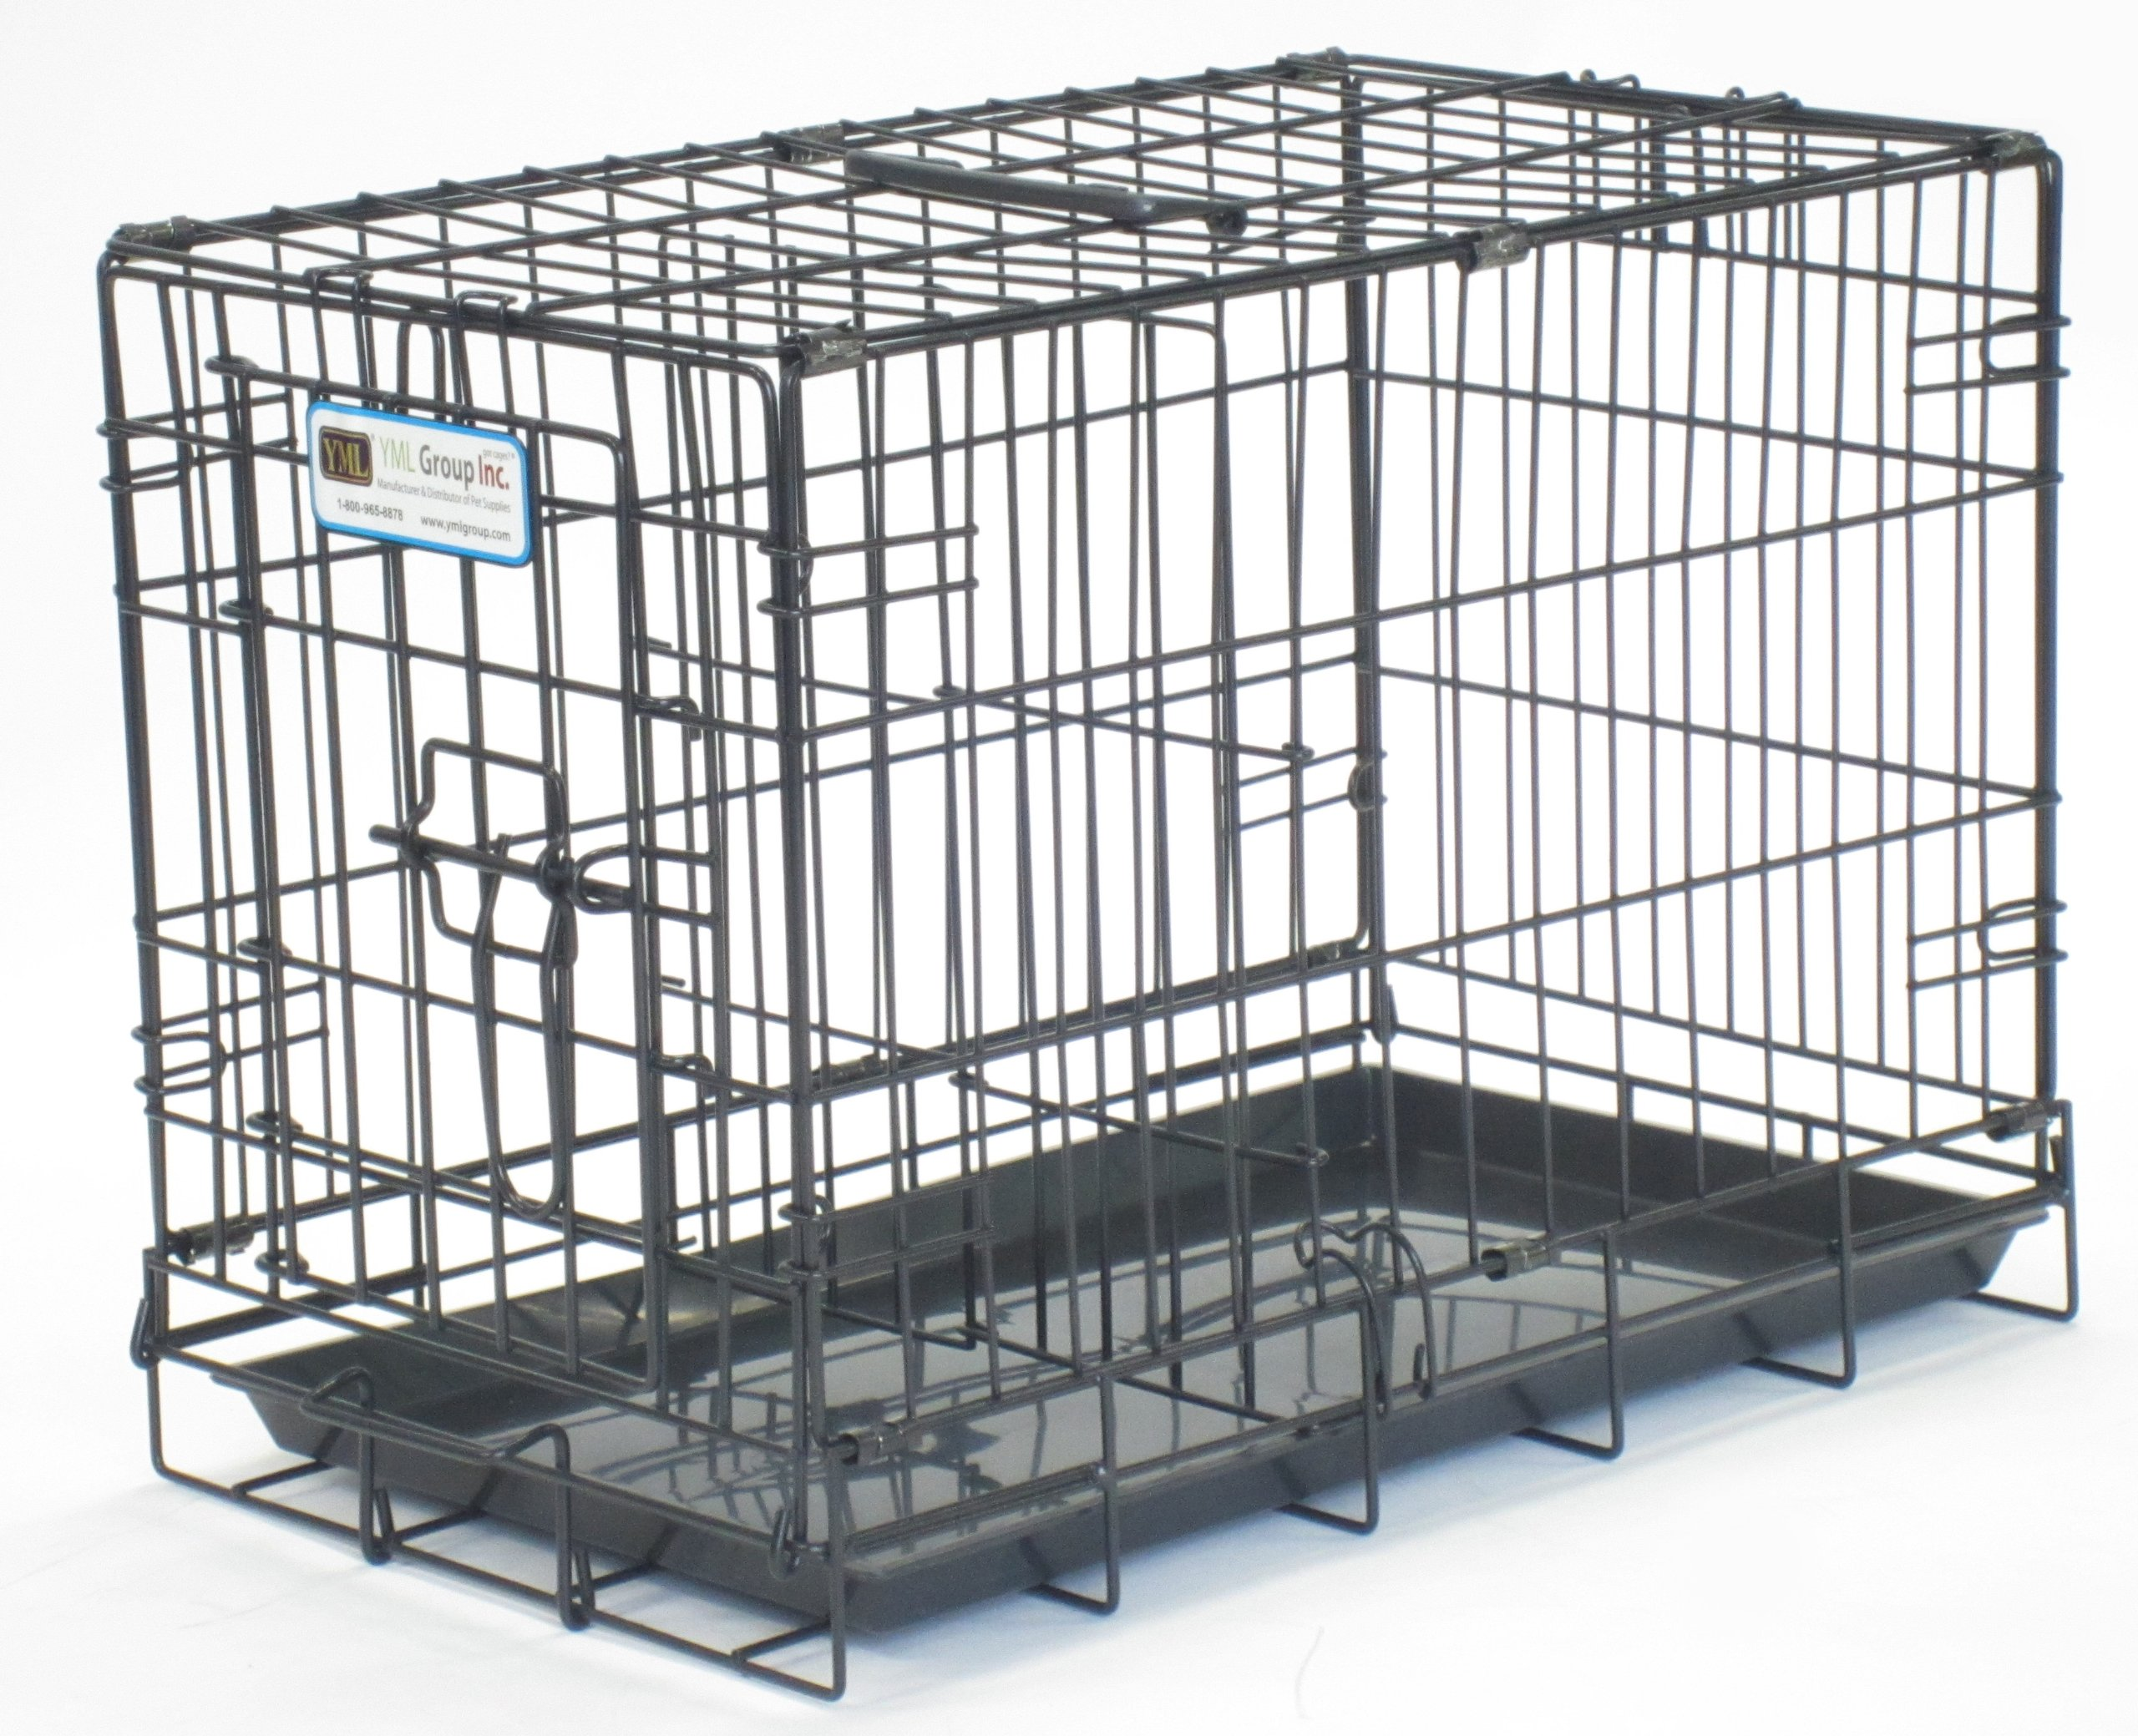 YML Heavy Duty Small Animal Dog Kennel Cage without Bottom Grate, 20-Inch, Black